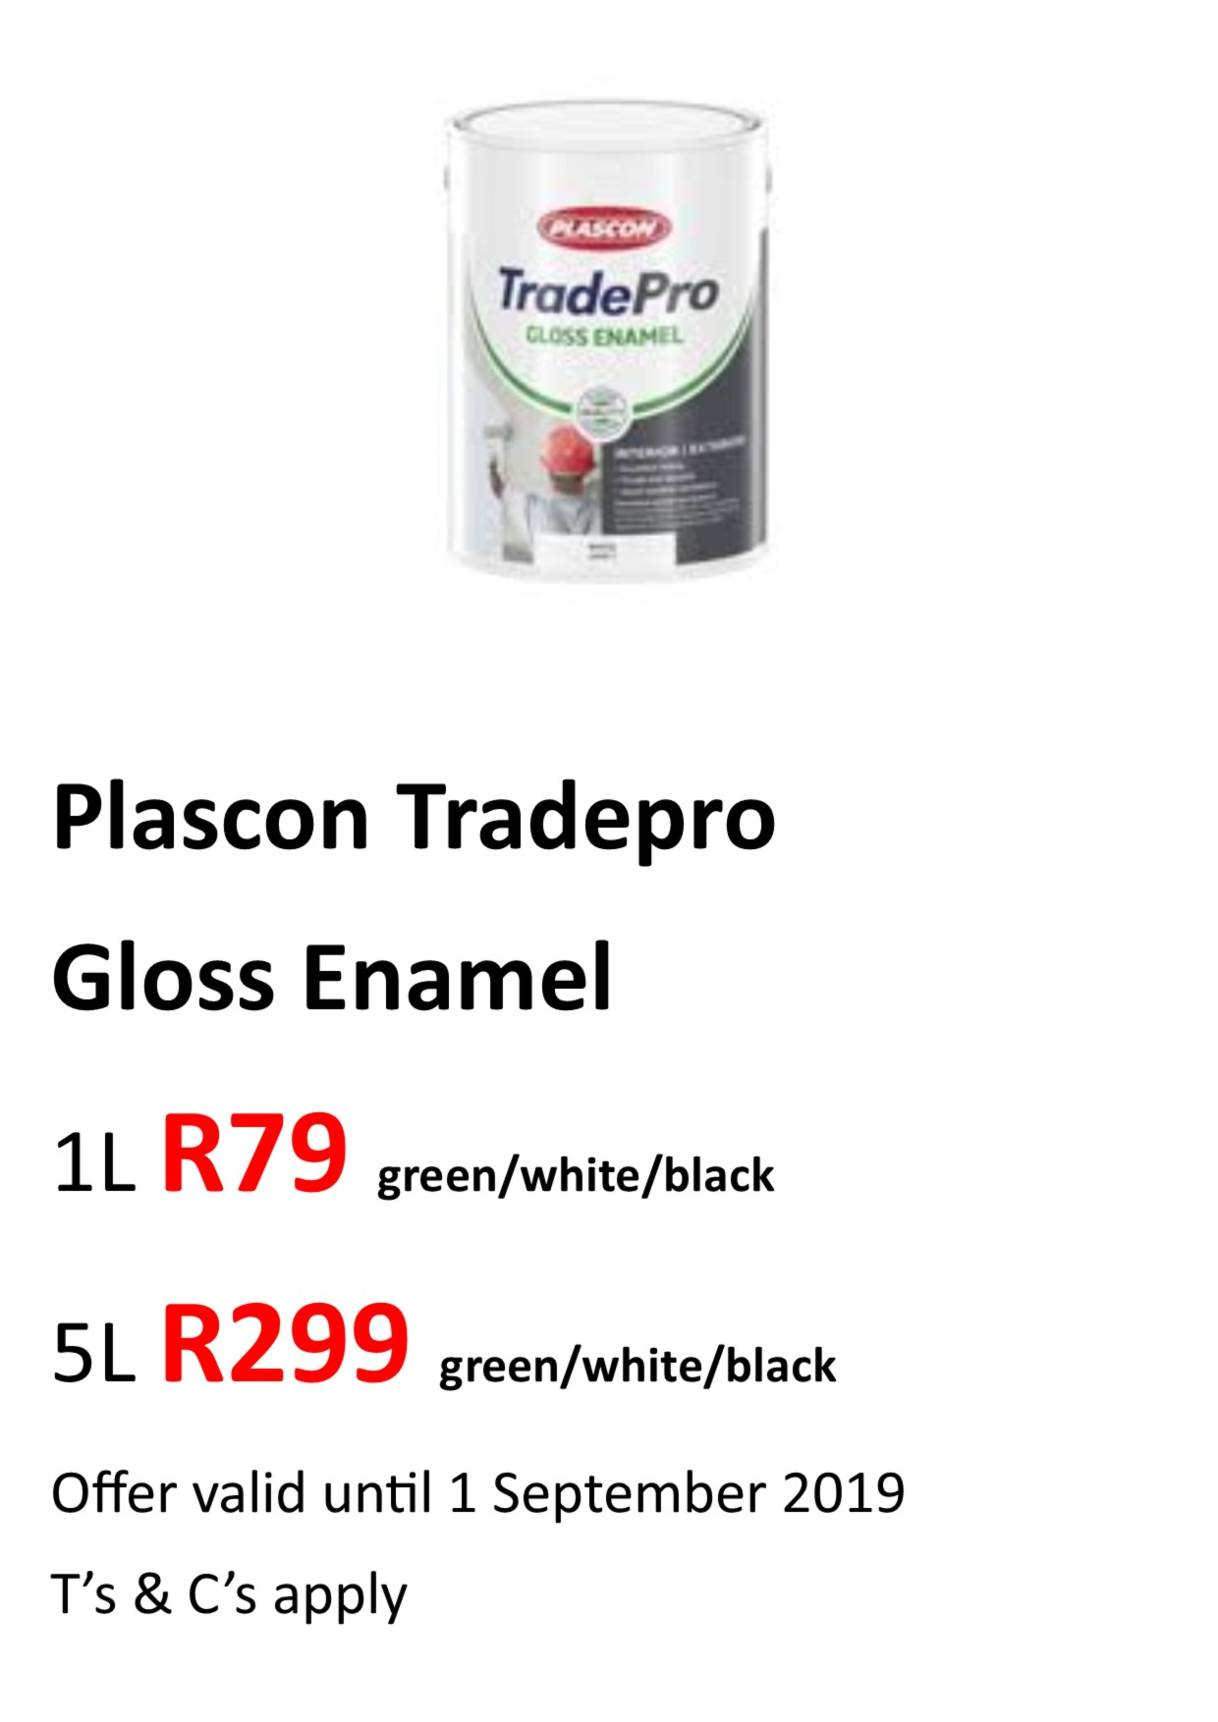 Tradepro gloss ename Aug 2019